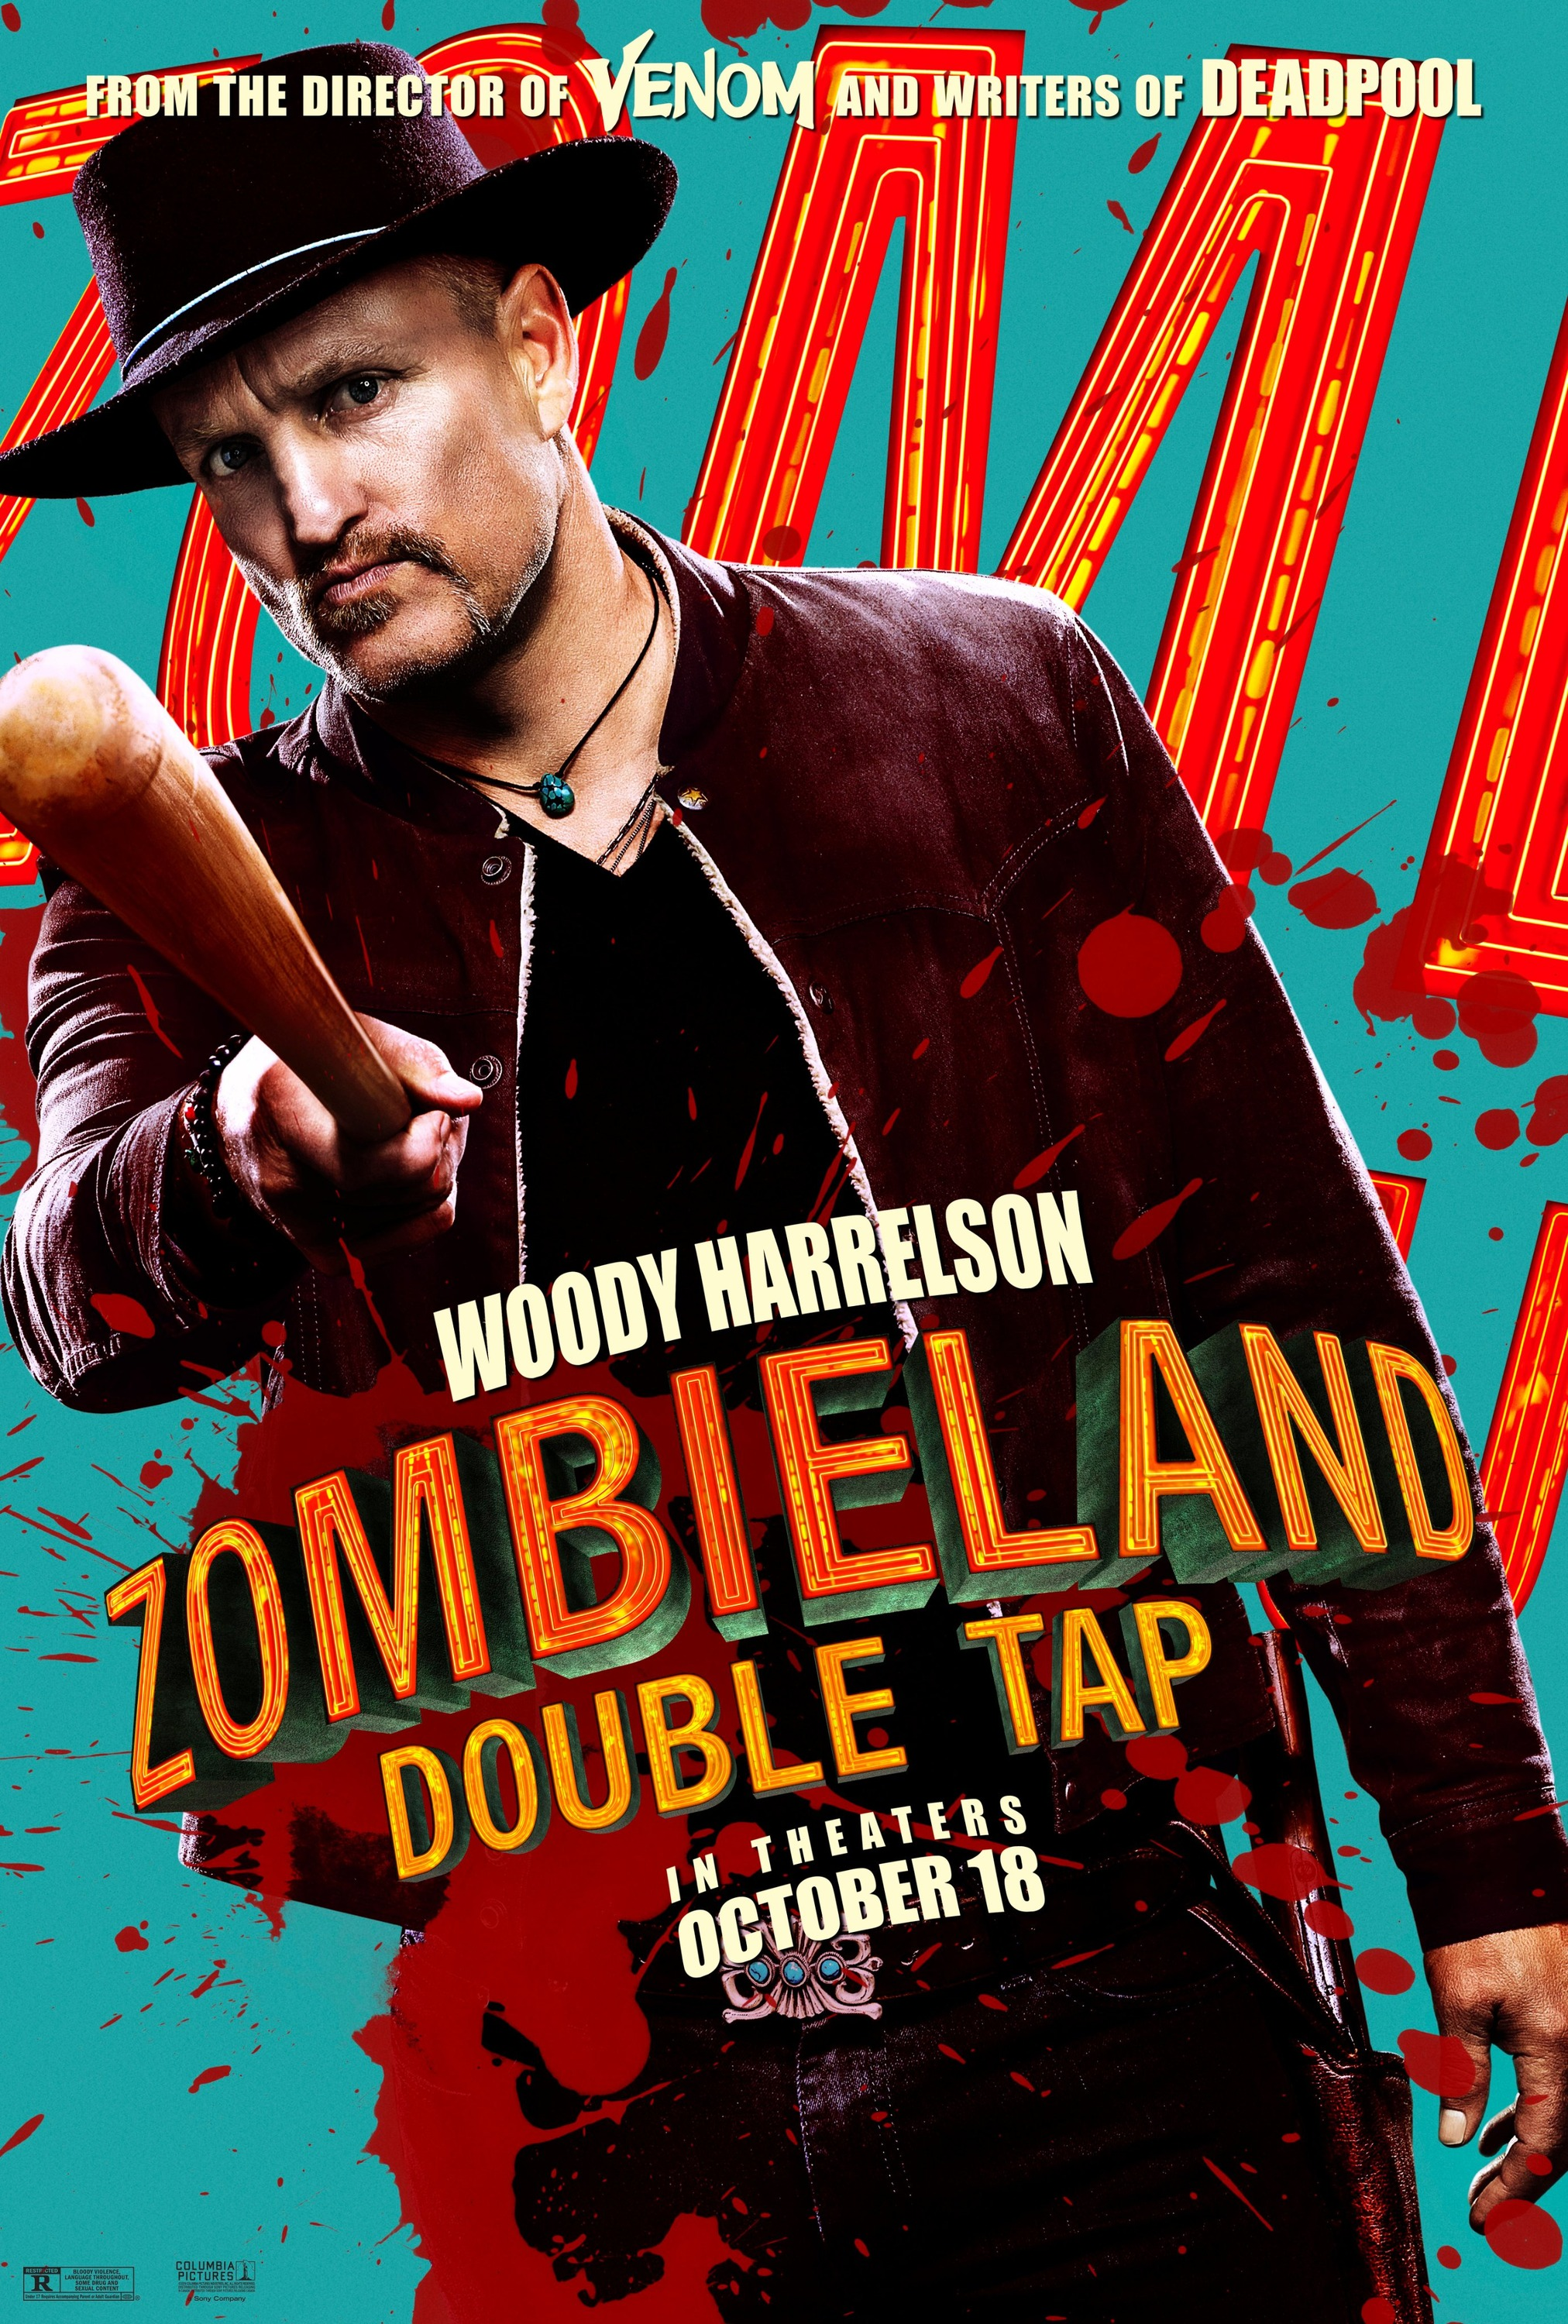 Zombieland: Double Tap (2019) Character Poster - Woody Harrelson as Tallahassee